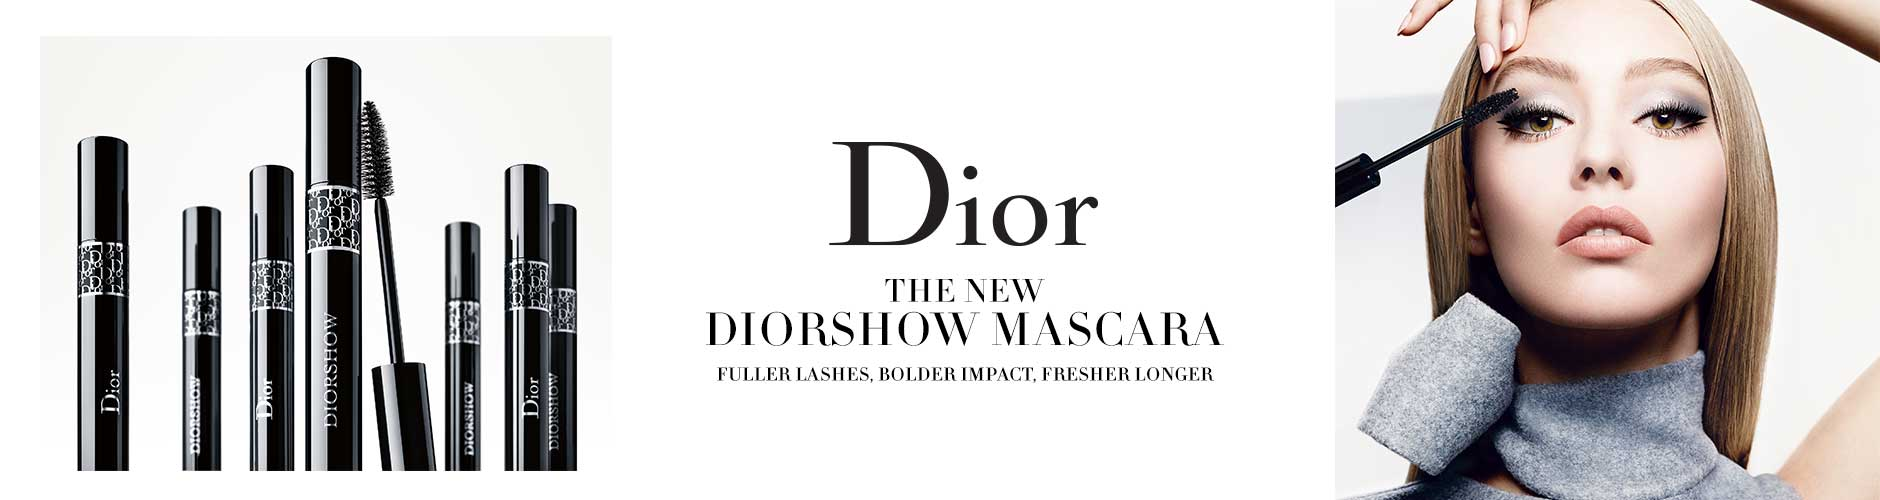 Dior new Diorshow mascara